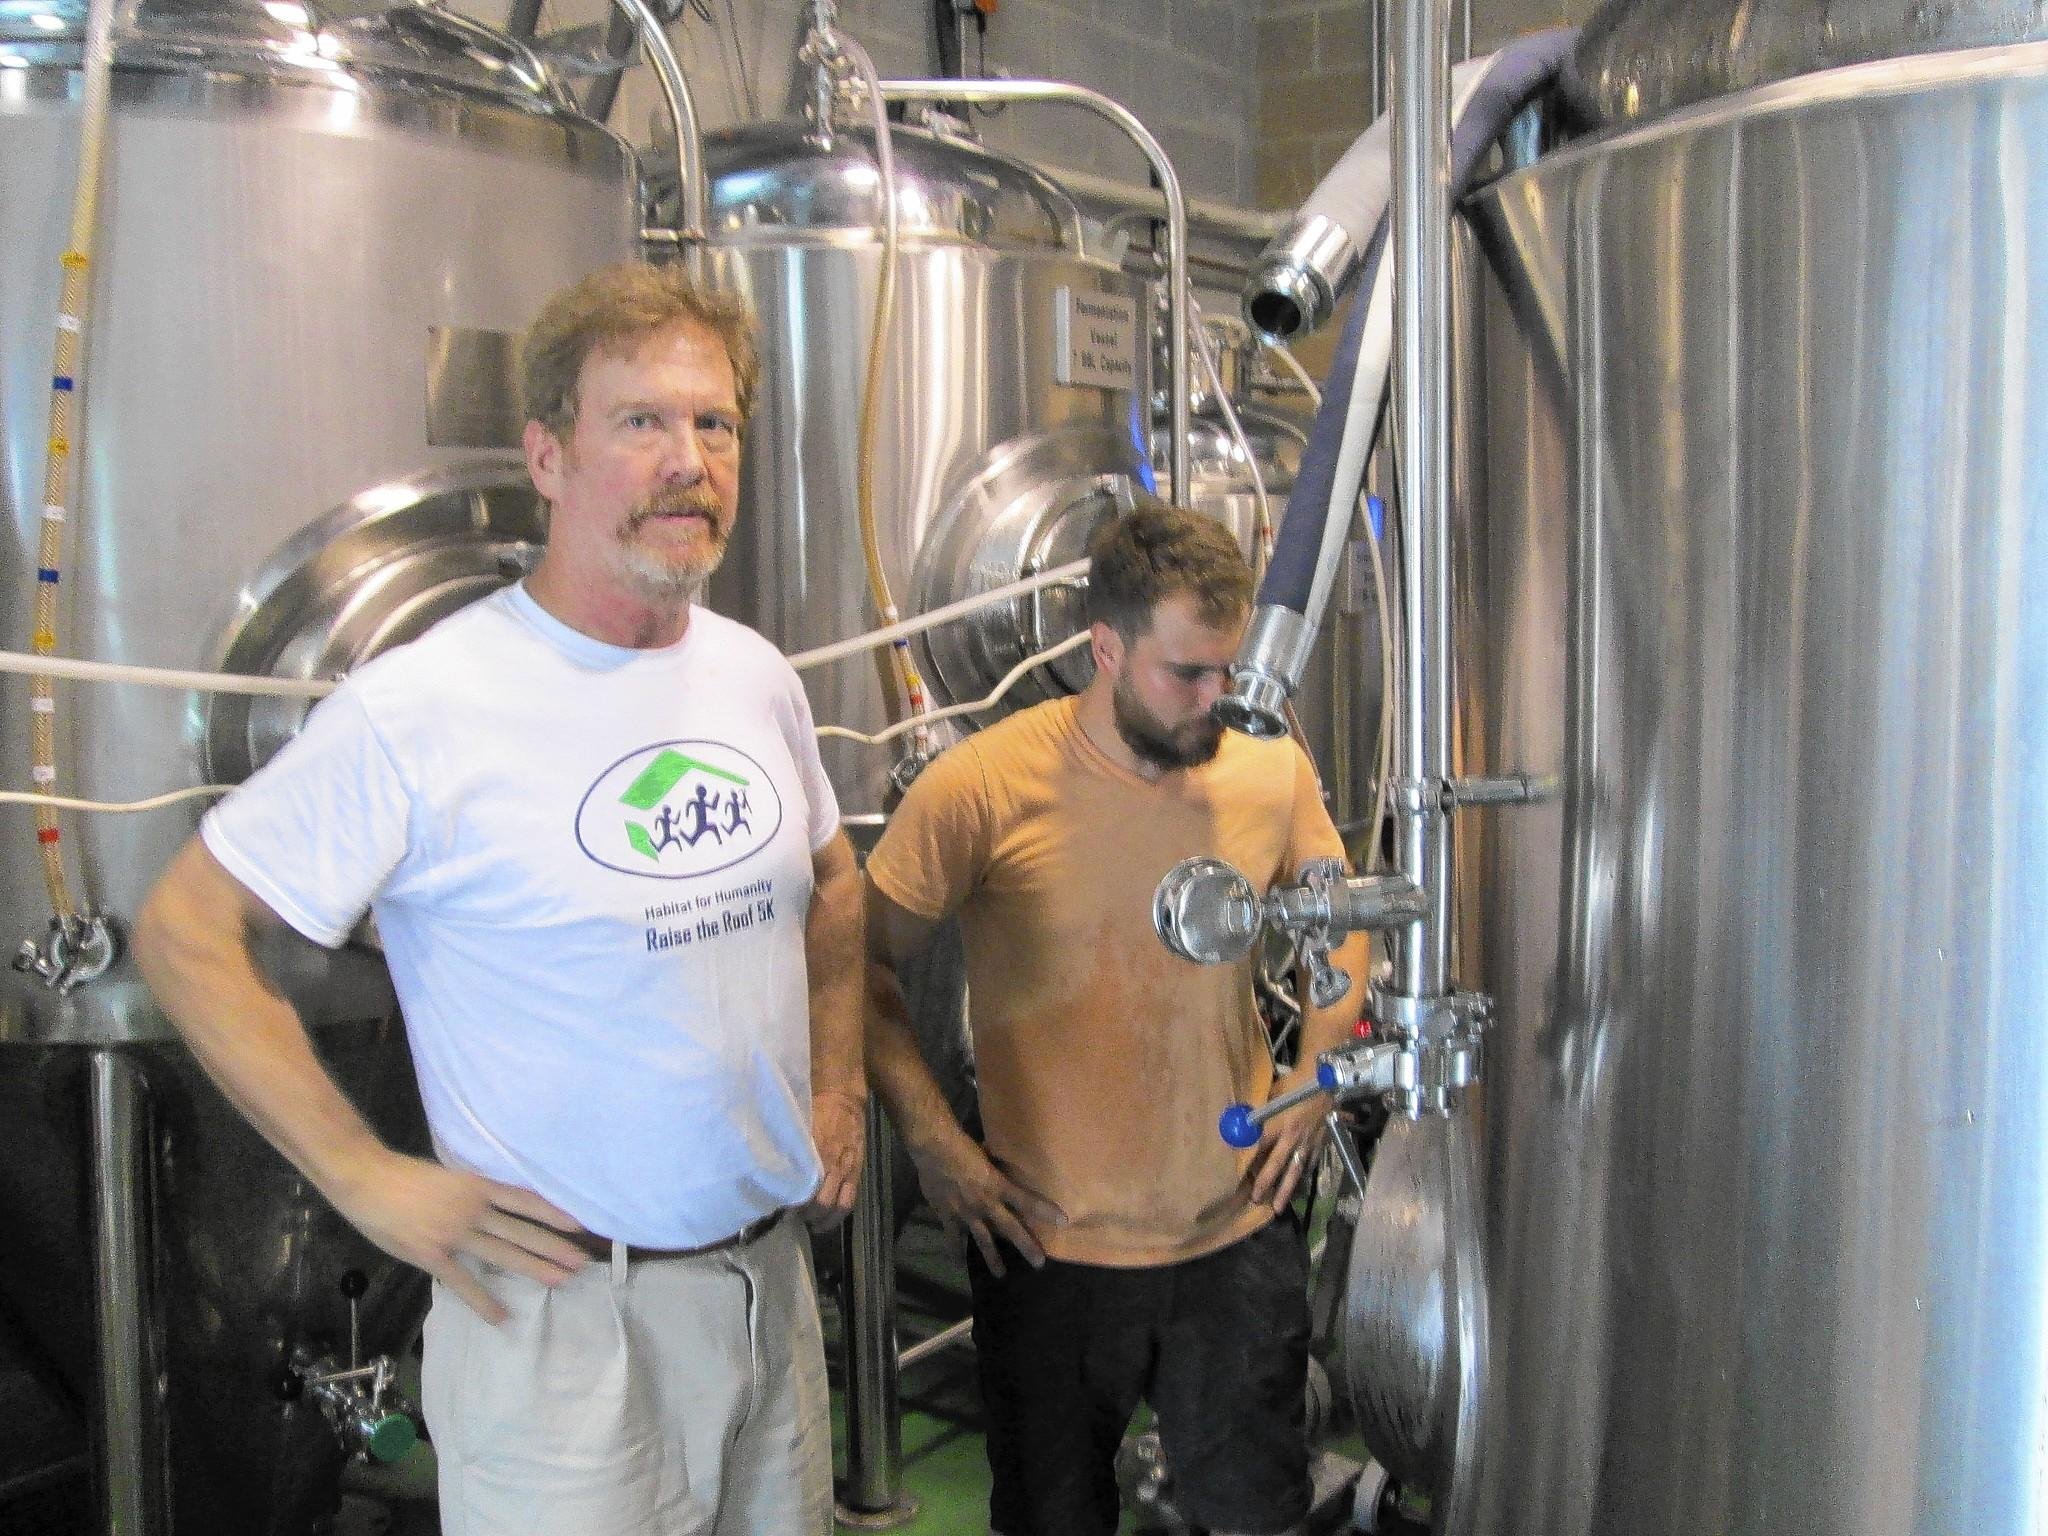 Head Brewmater Doug Stoffer (left) and Assistant Brewmaster Mike Kristin(right) transfer beer into a vat.